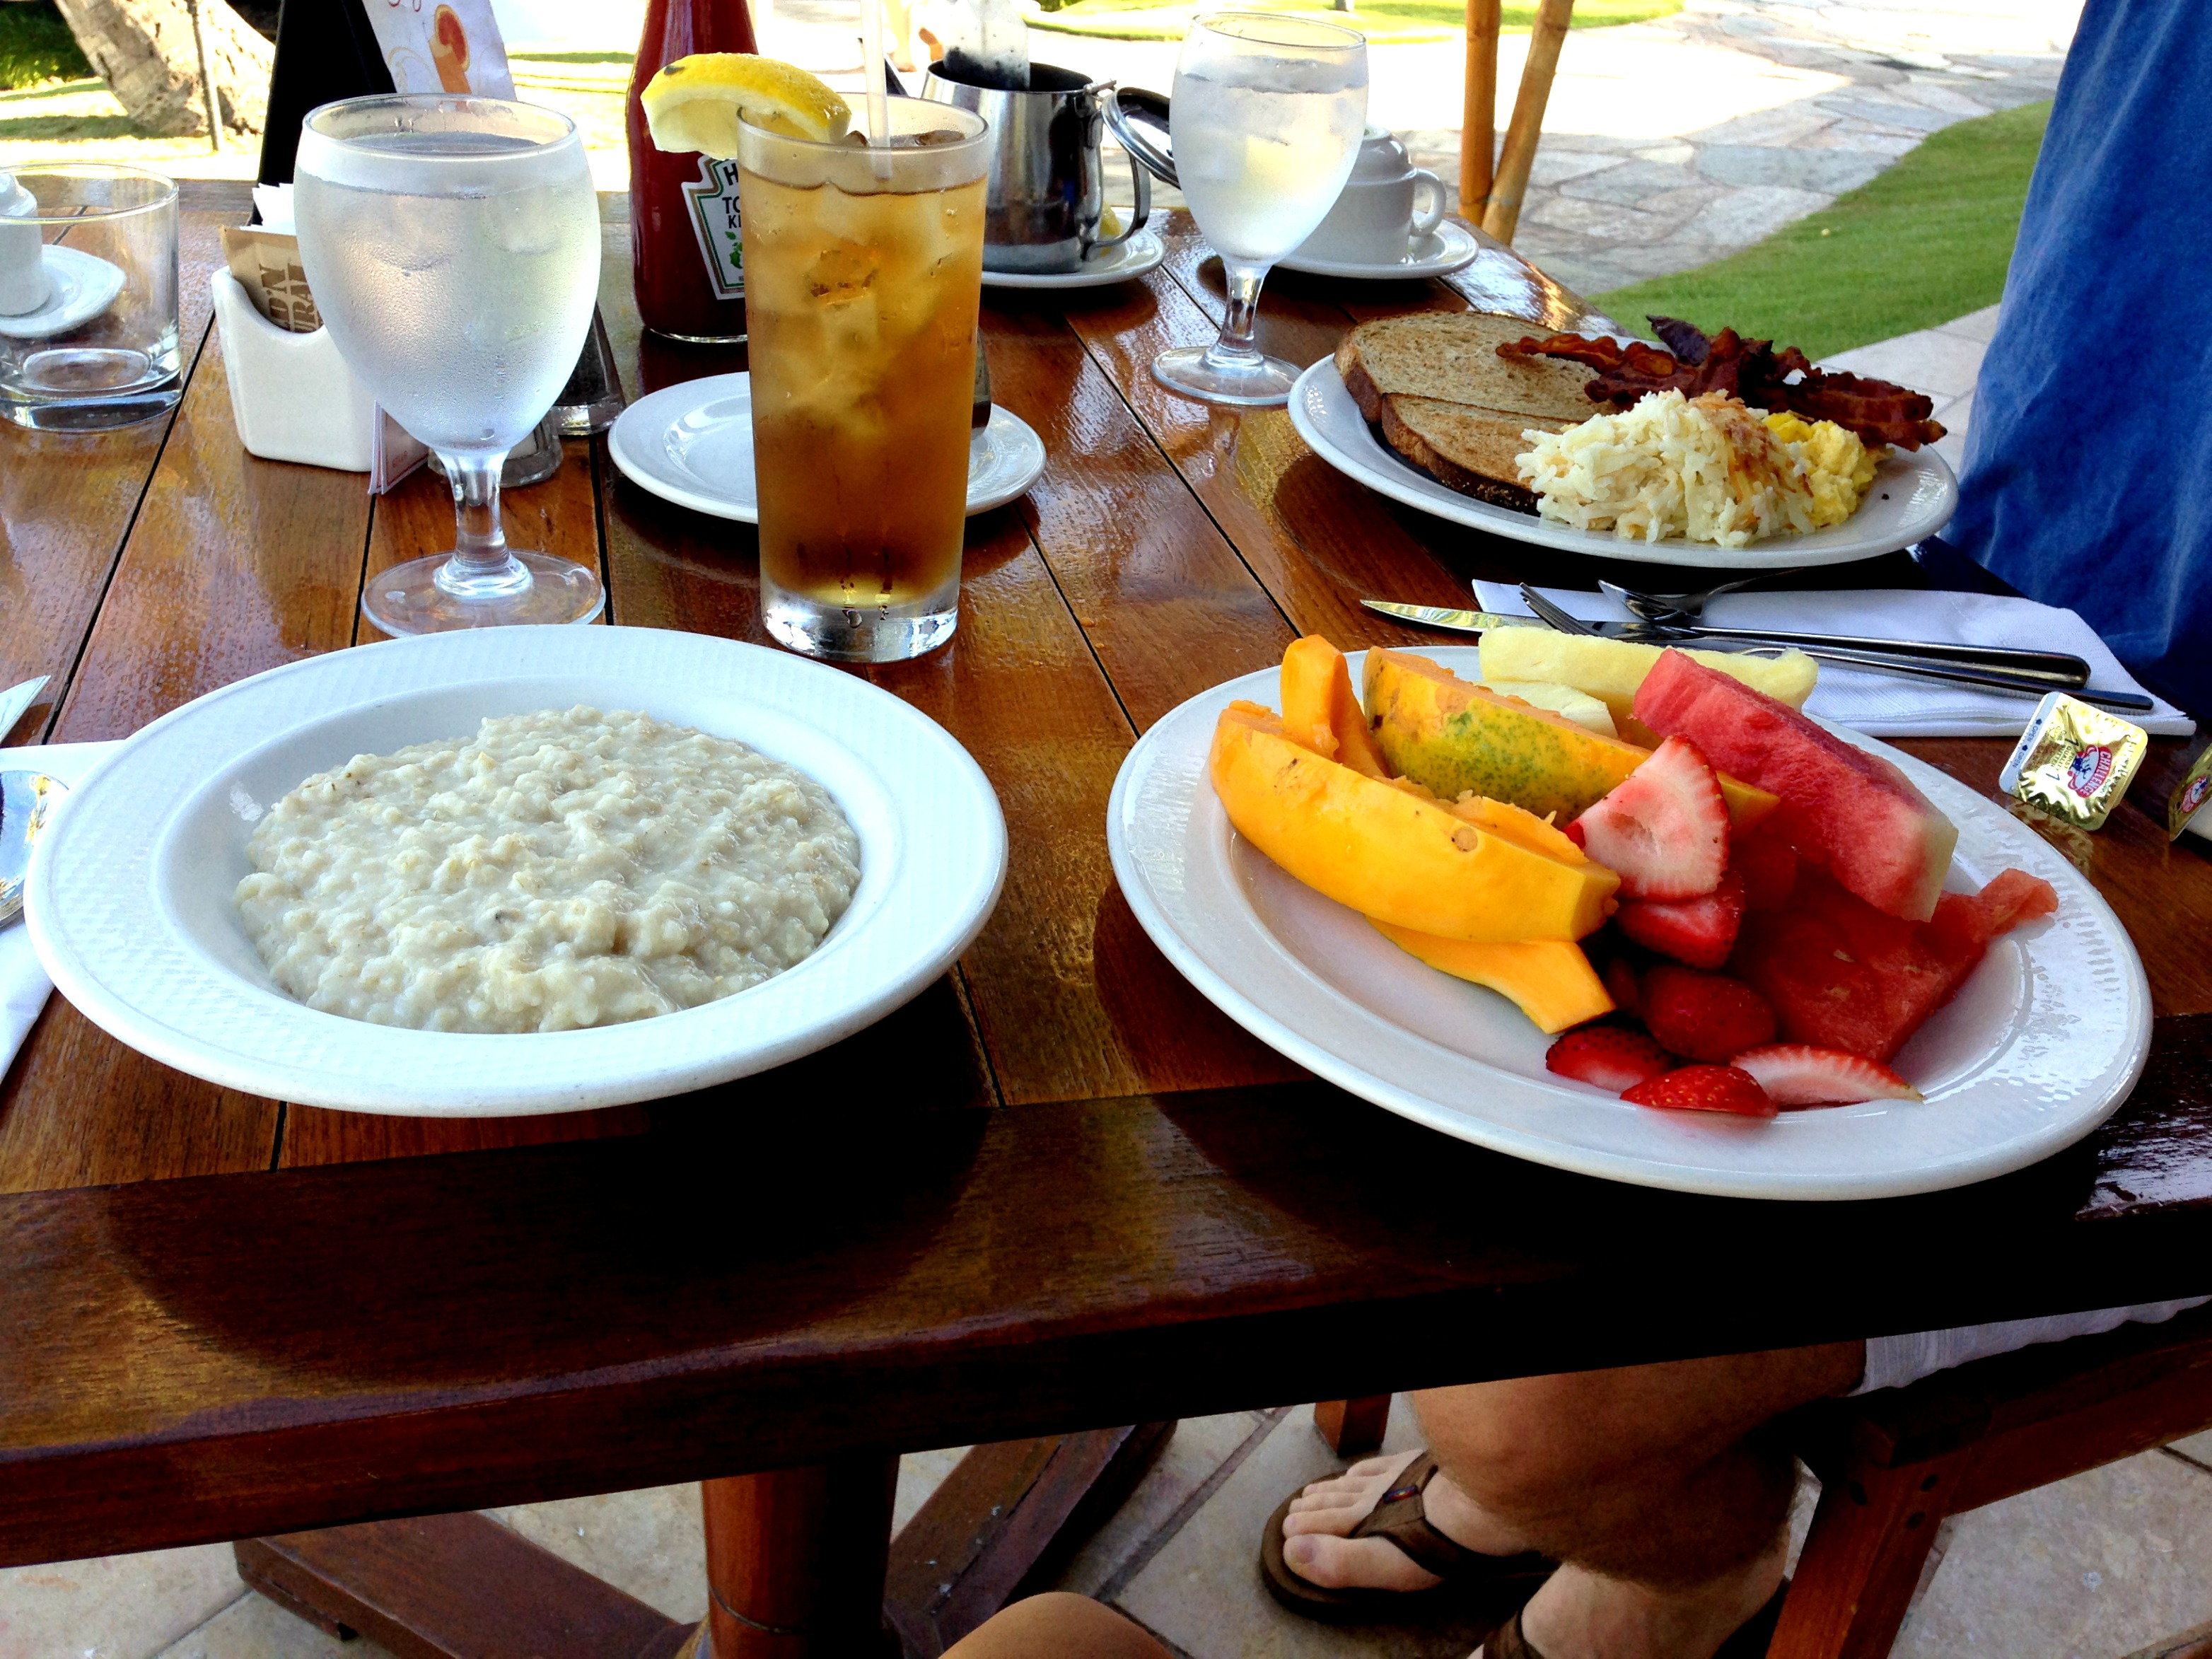 breakfast at the sheraton maui spread